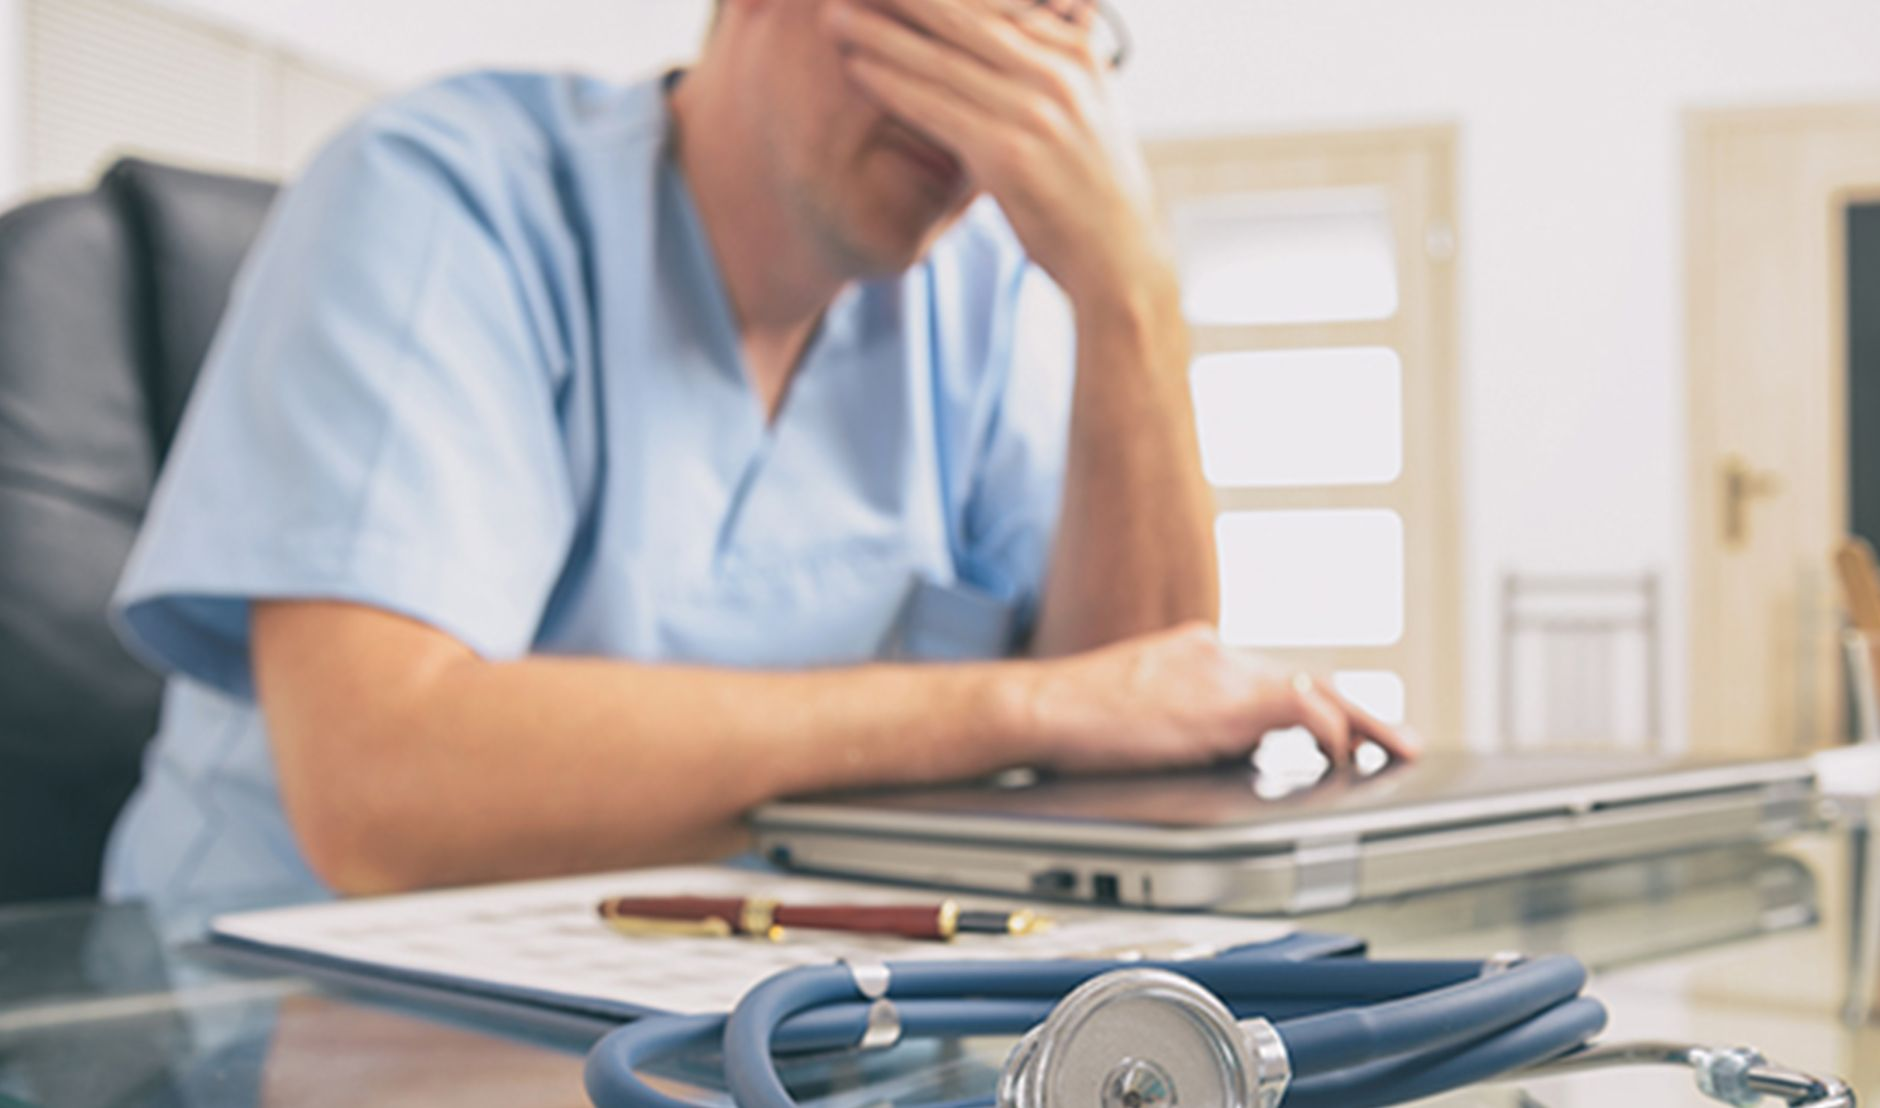 male doctor stressed job